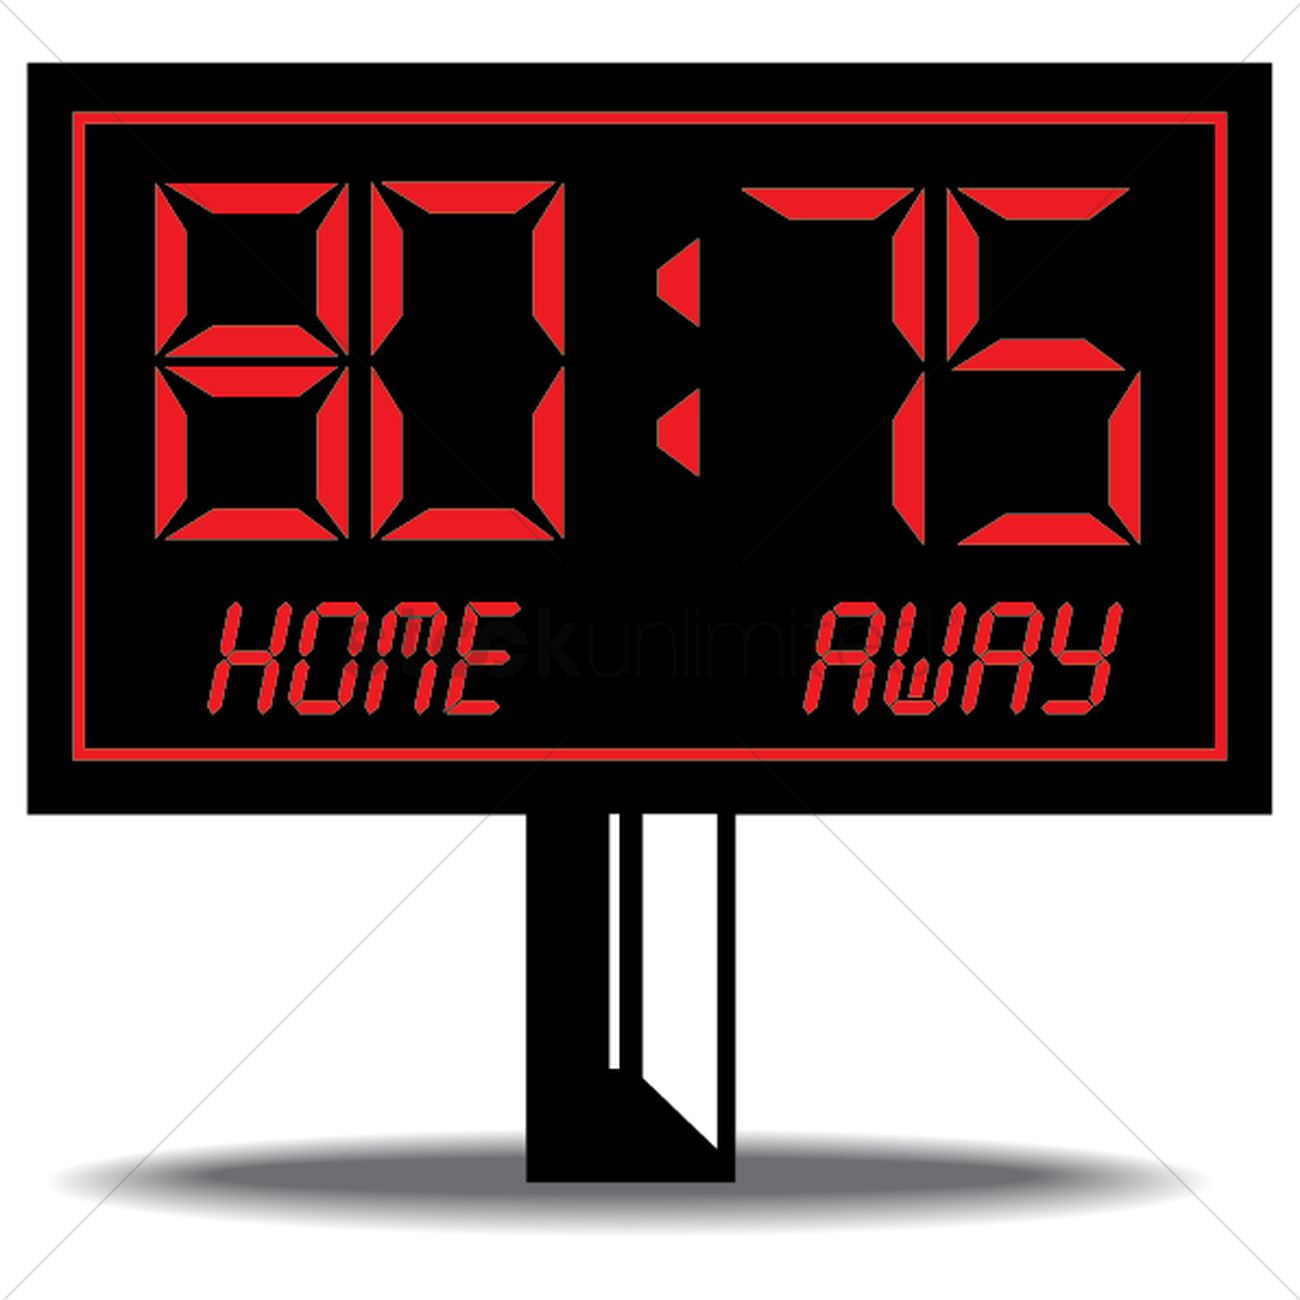 basketball scoreboard vector image 1434023 stockunlimited rh stockunlimited com blank scoreboard clipart football scoreboard clipart